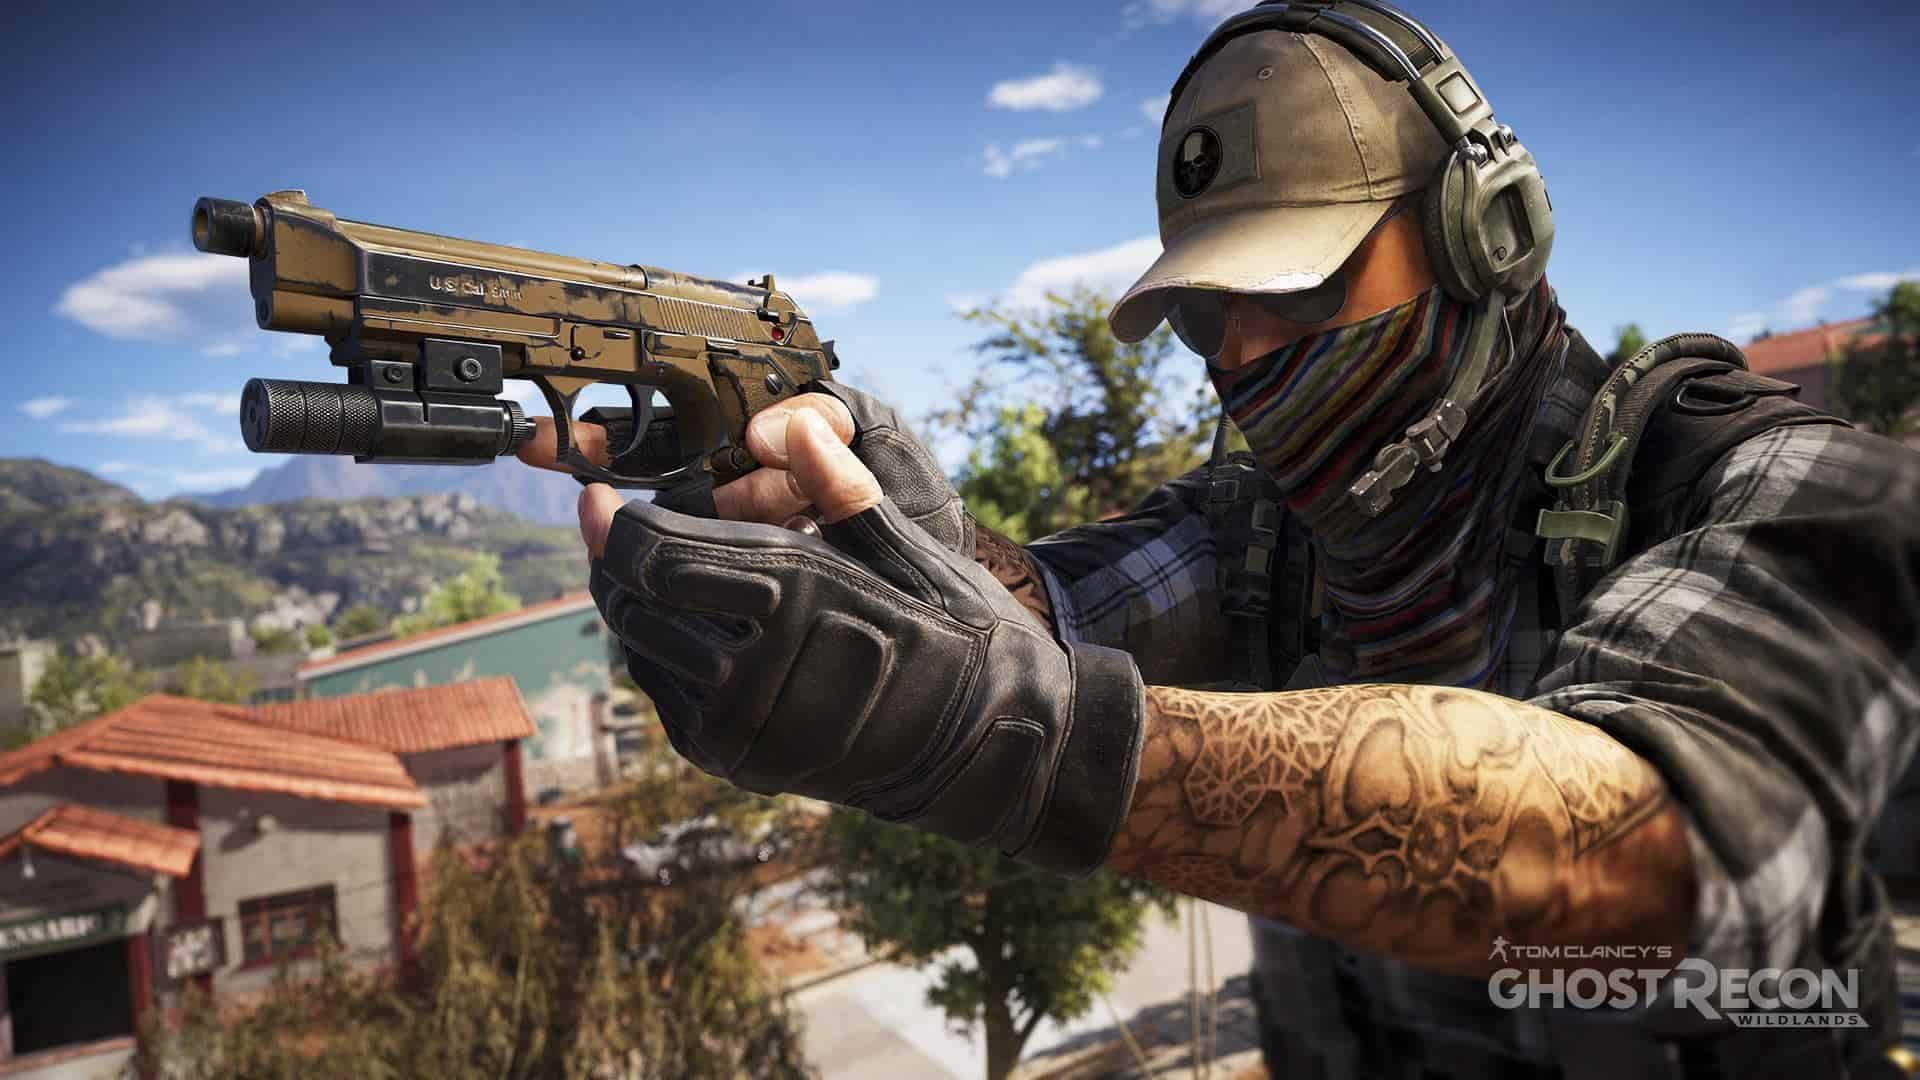 ghost recon wildlands update 1.30